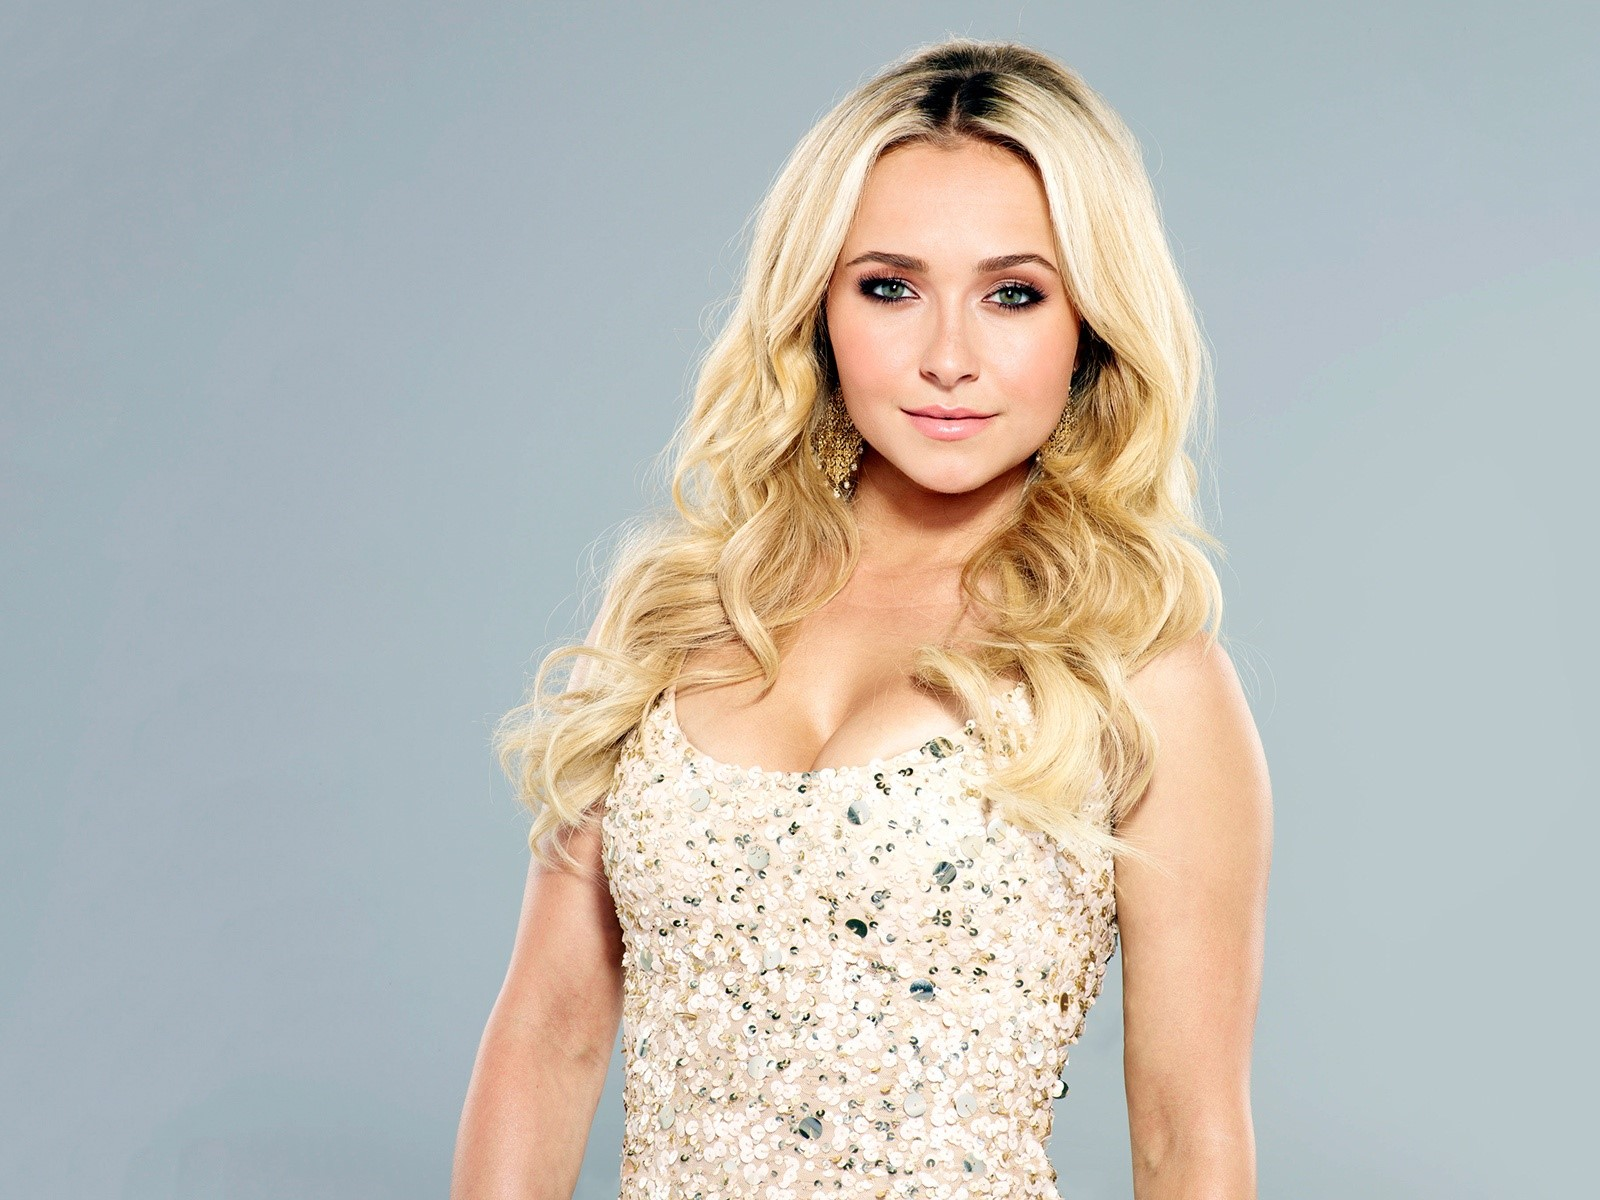 Wallpaper Hayden panettiere Images